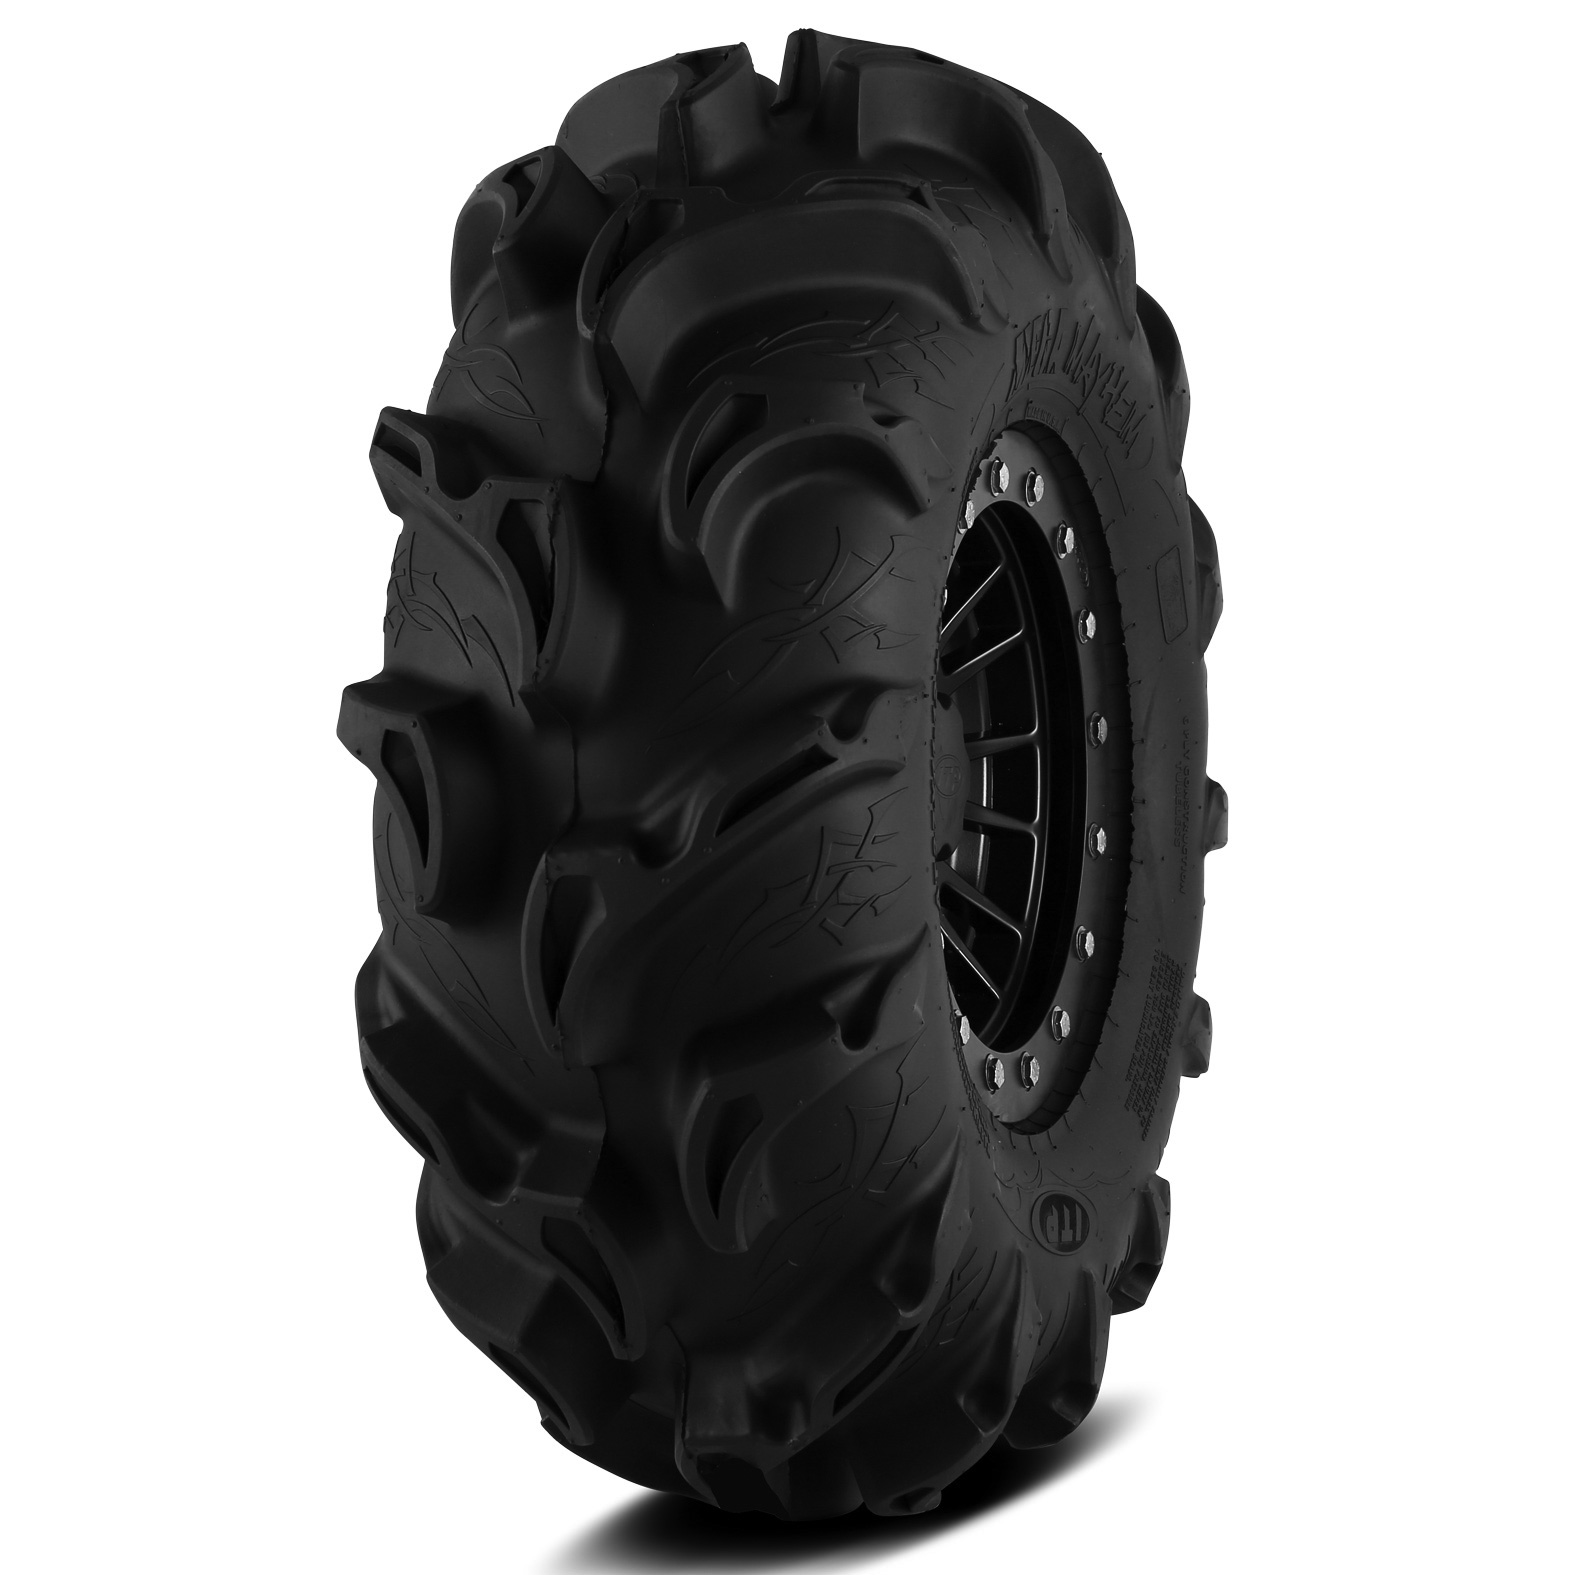 ITP Mega Mayhem ATV Tire - Angle